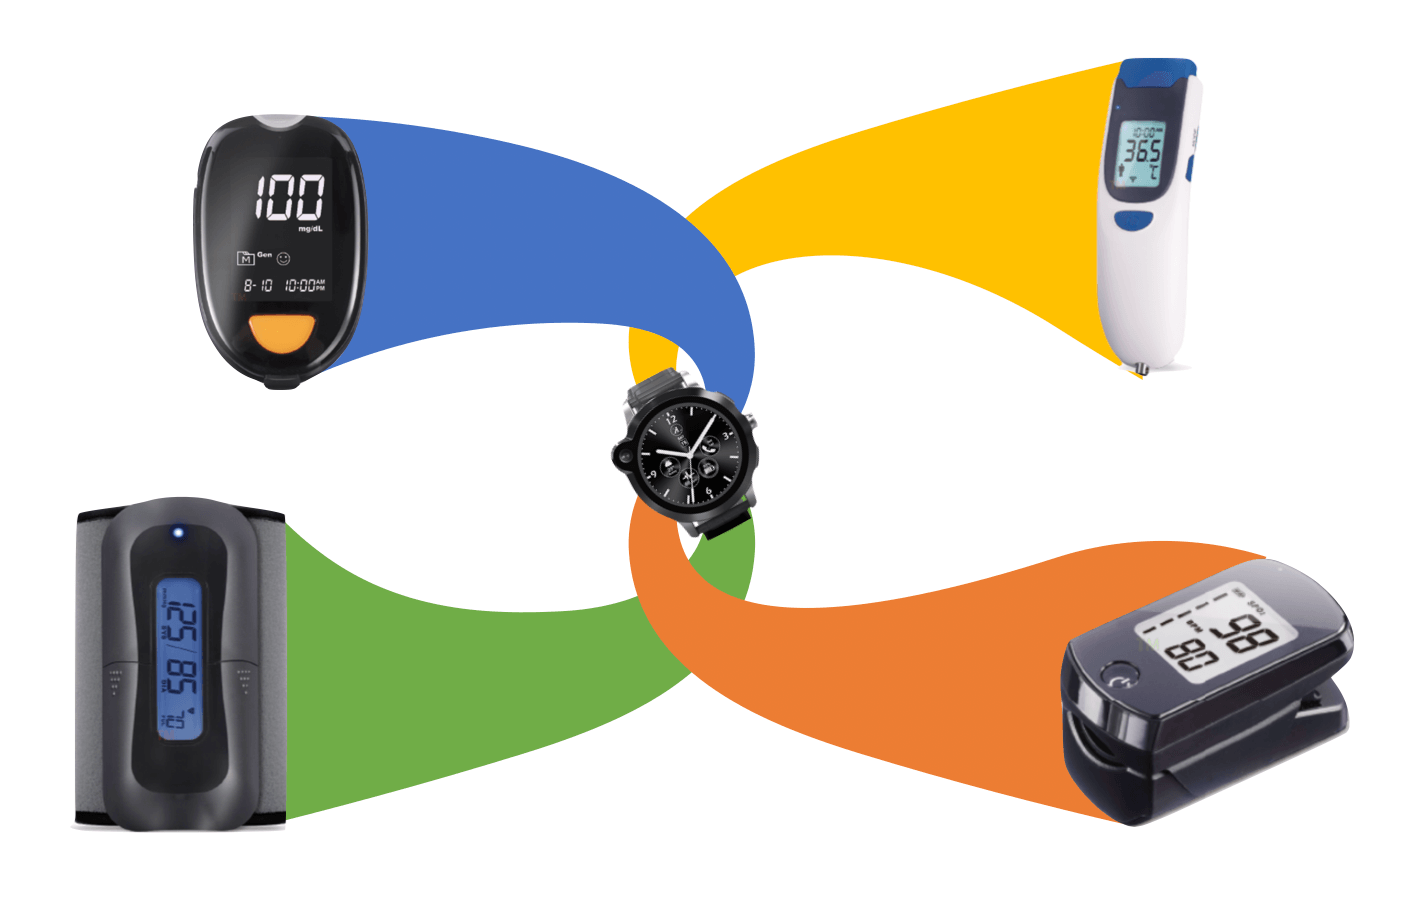 Telehealth connect medeical devices LooK Watch II mPERS Smartwatch